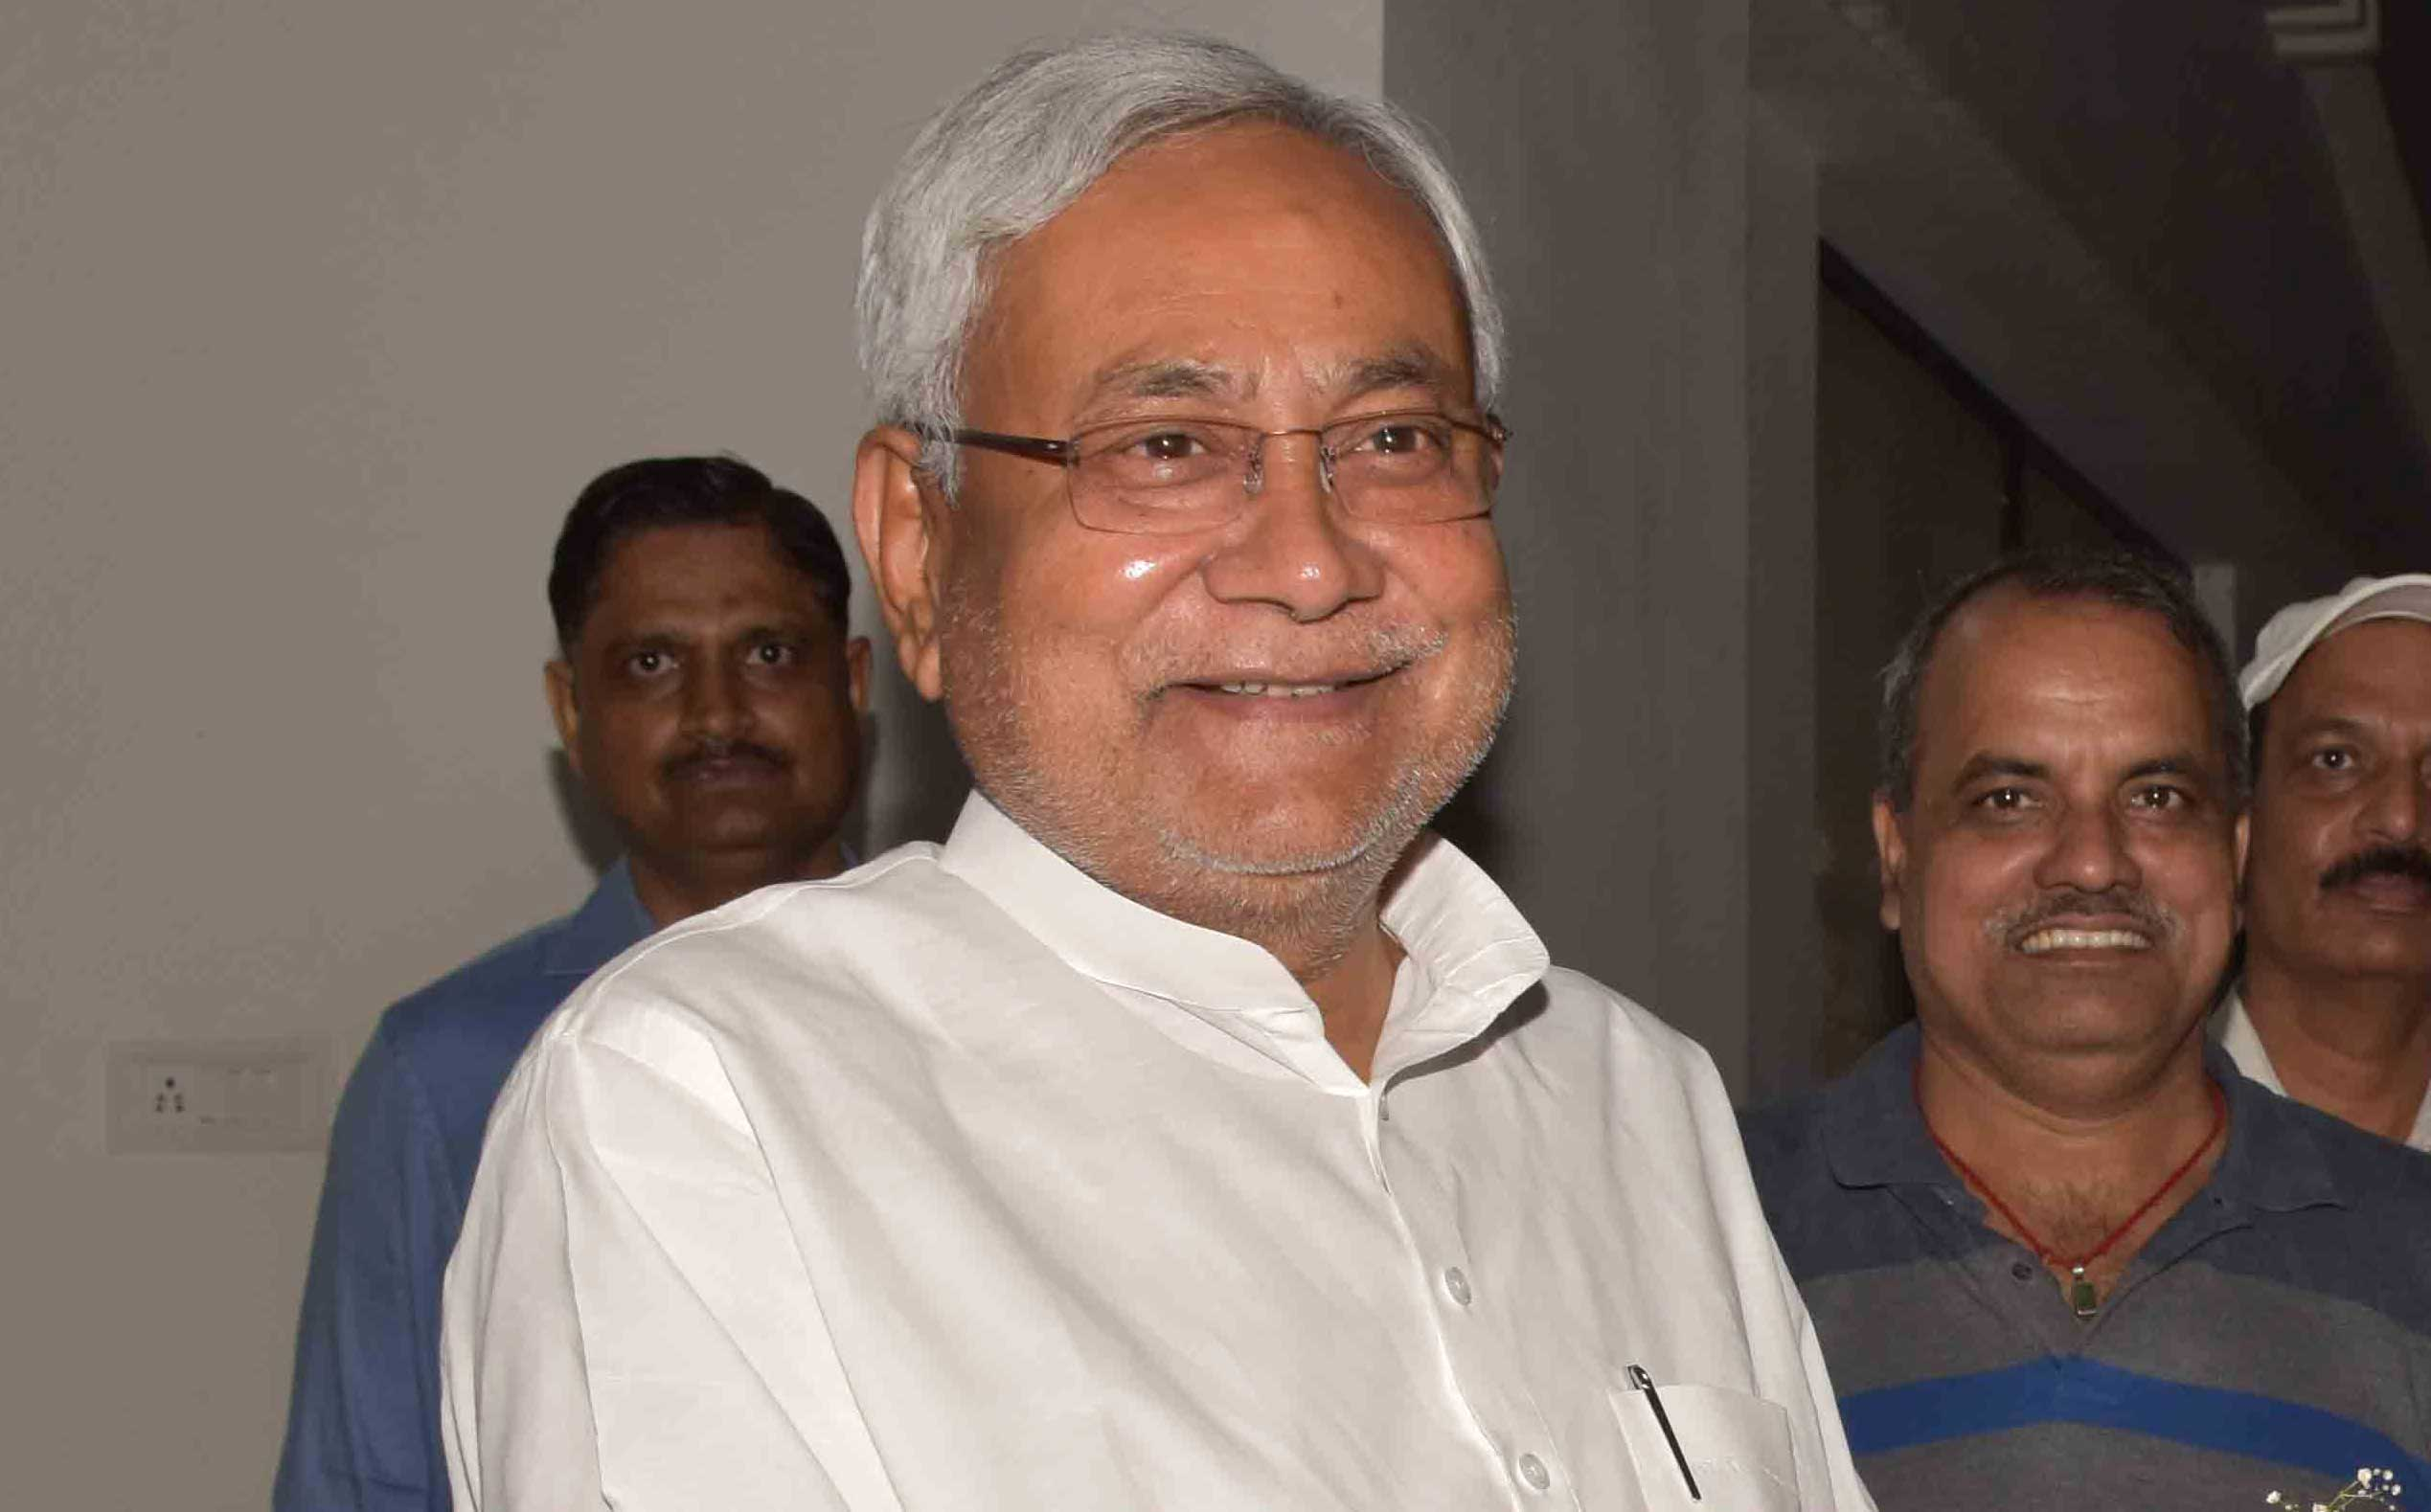 The JDU, which is led by Bihar chief minister Nitish Kumar, is a constituent of the National Democratic Alliance.